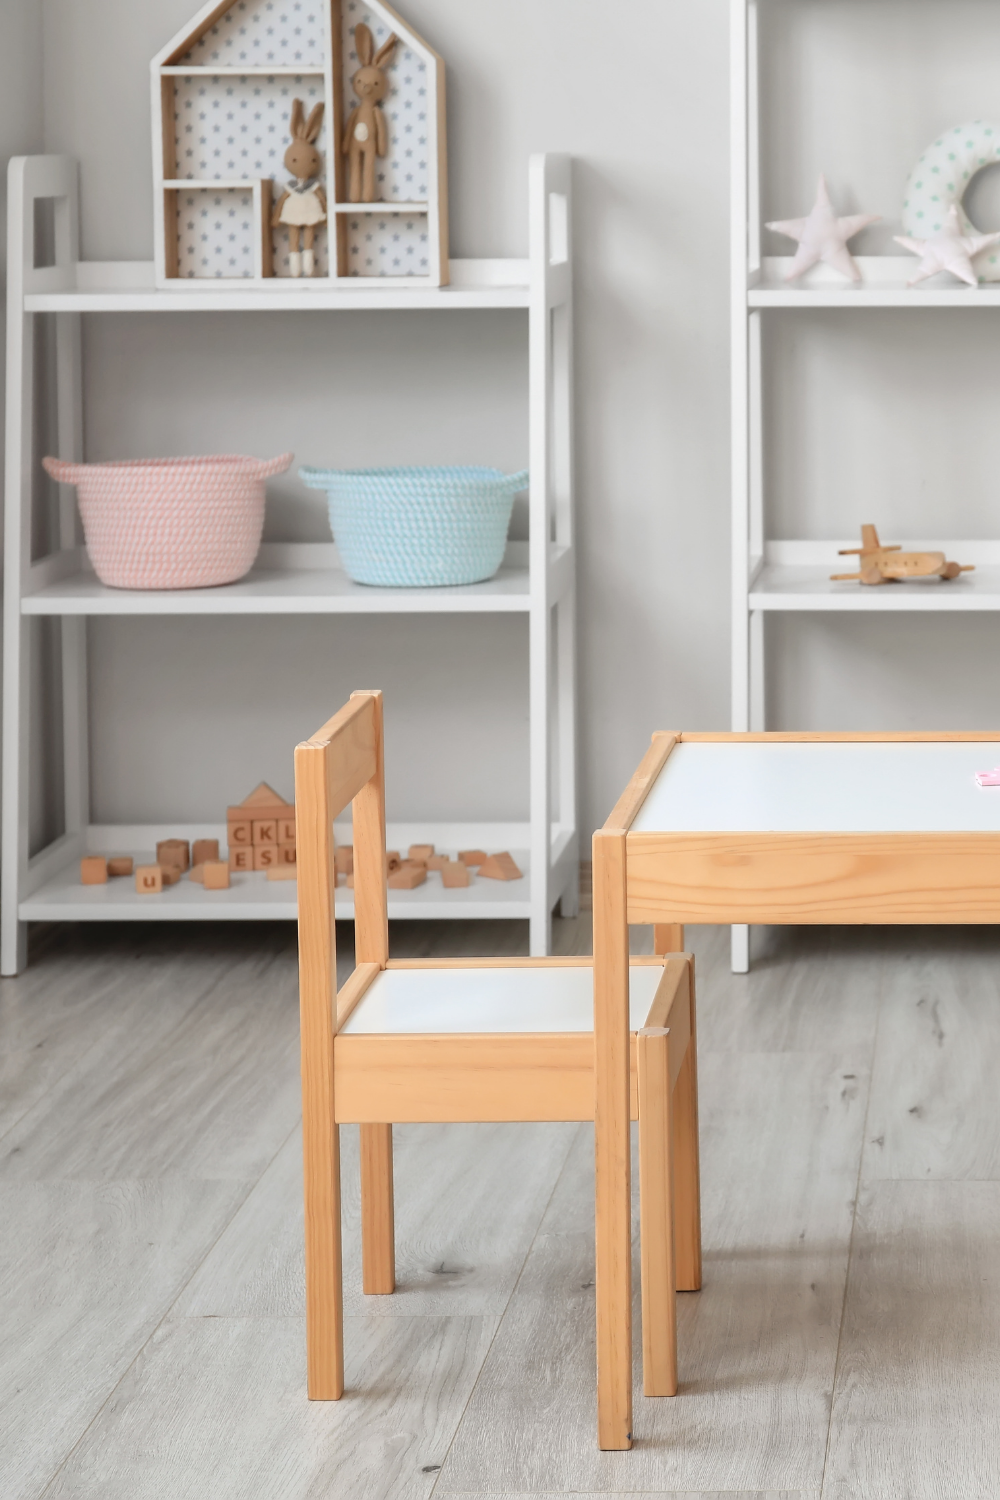 22 Chic Toddler Playroom Inspirations That Even Mom Would Love to Play In